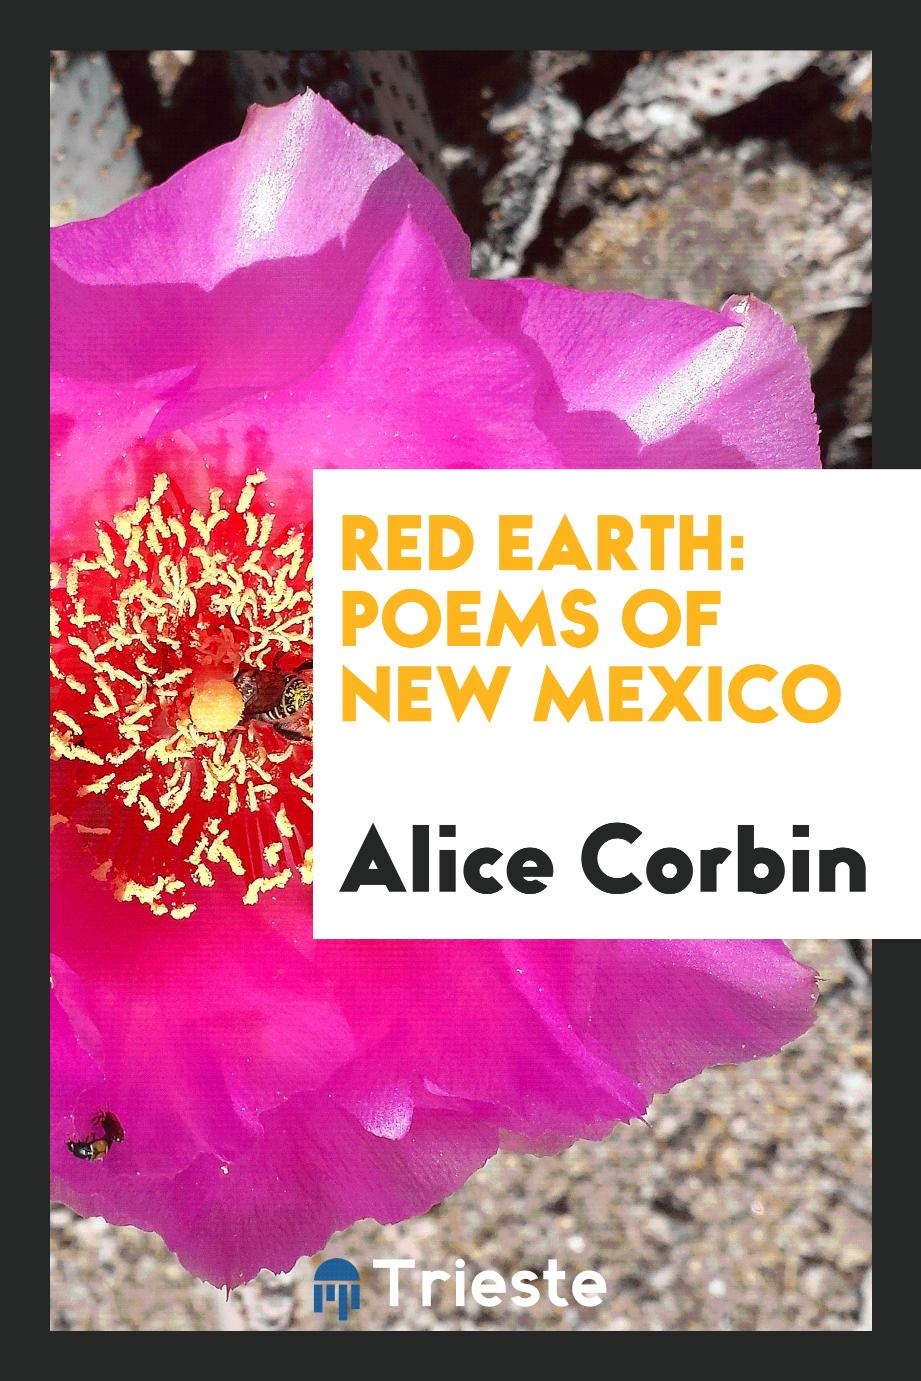 Red earth: poems of New Mexico